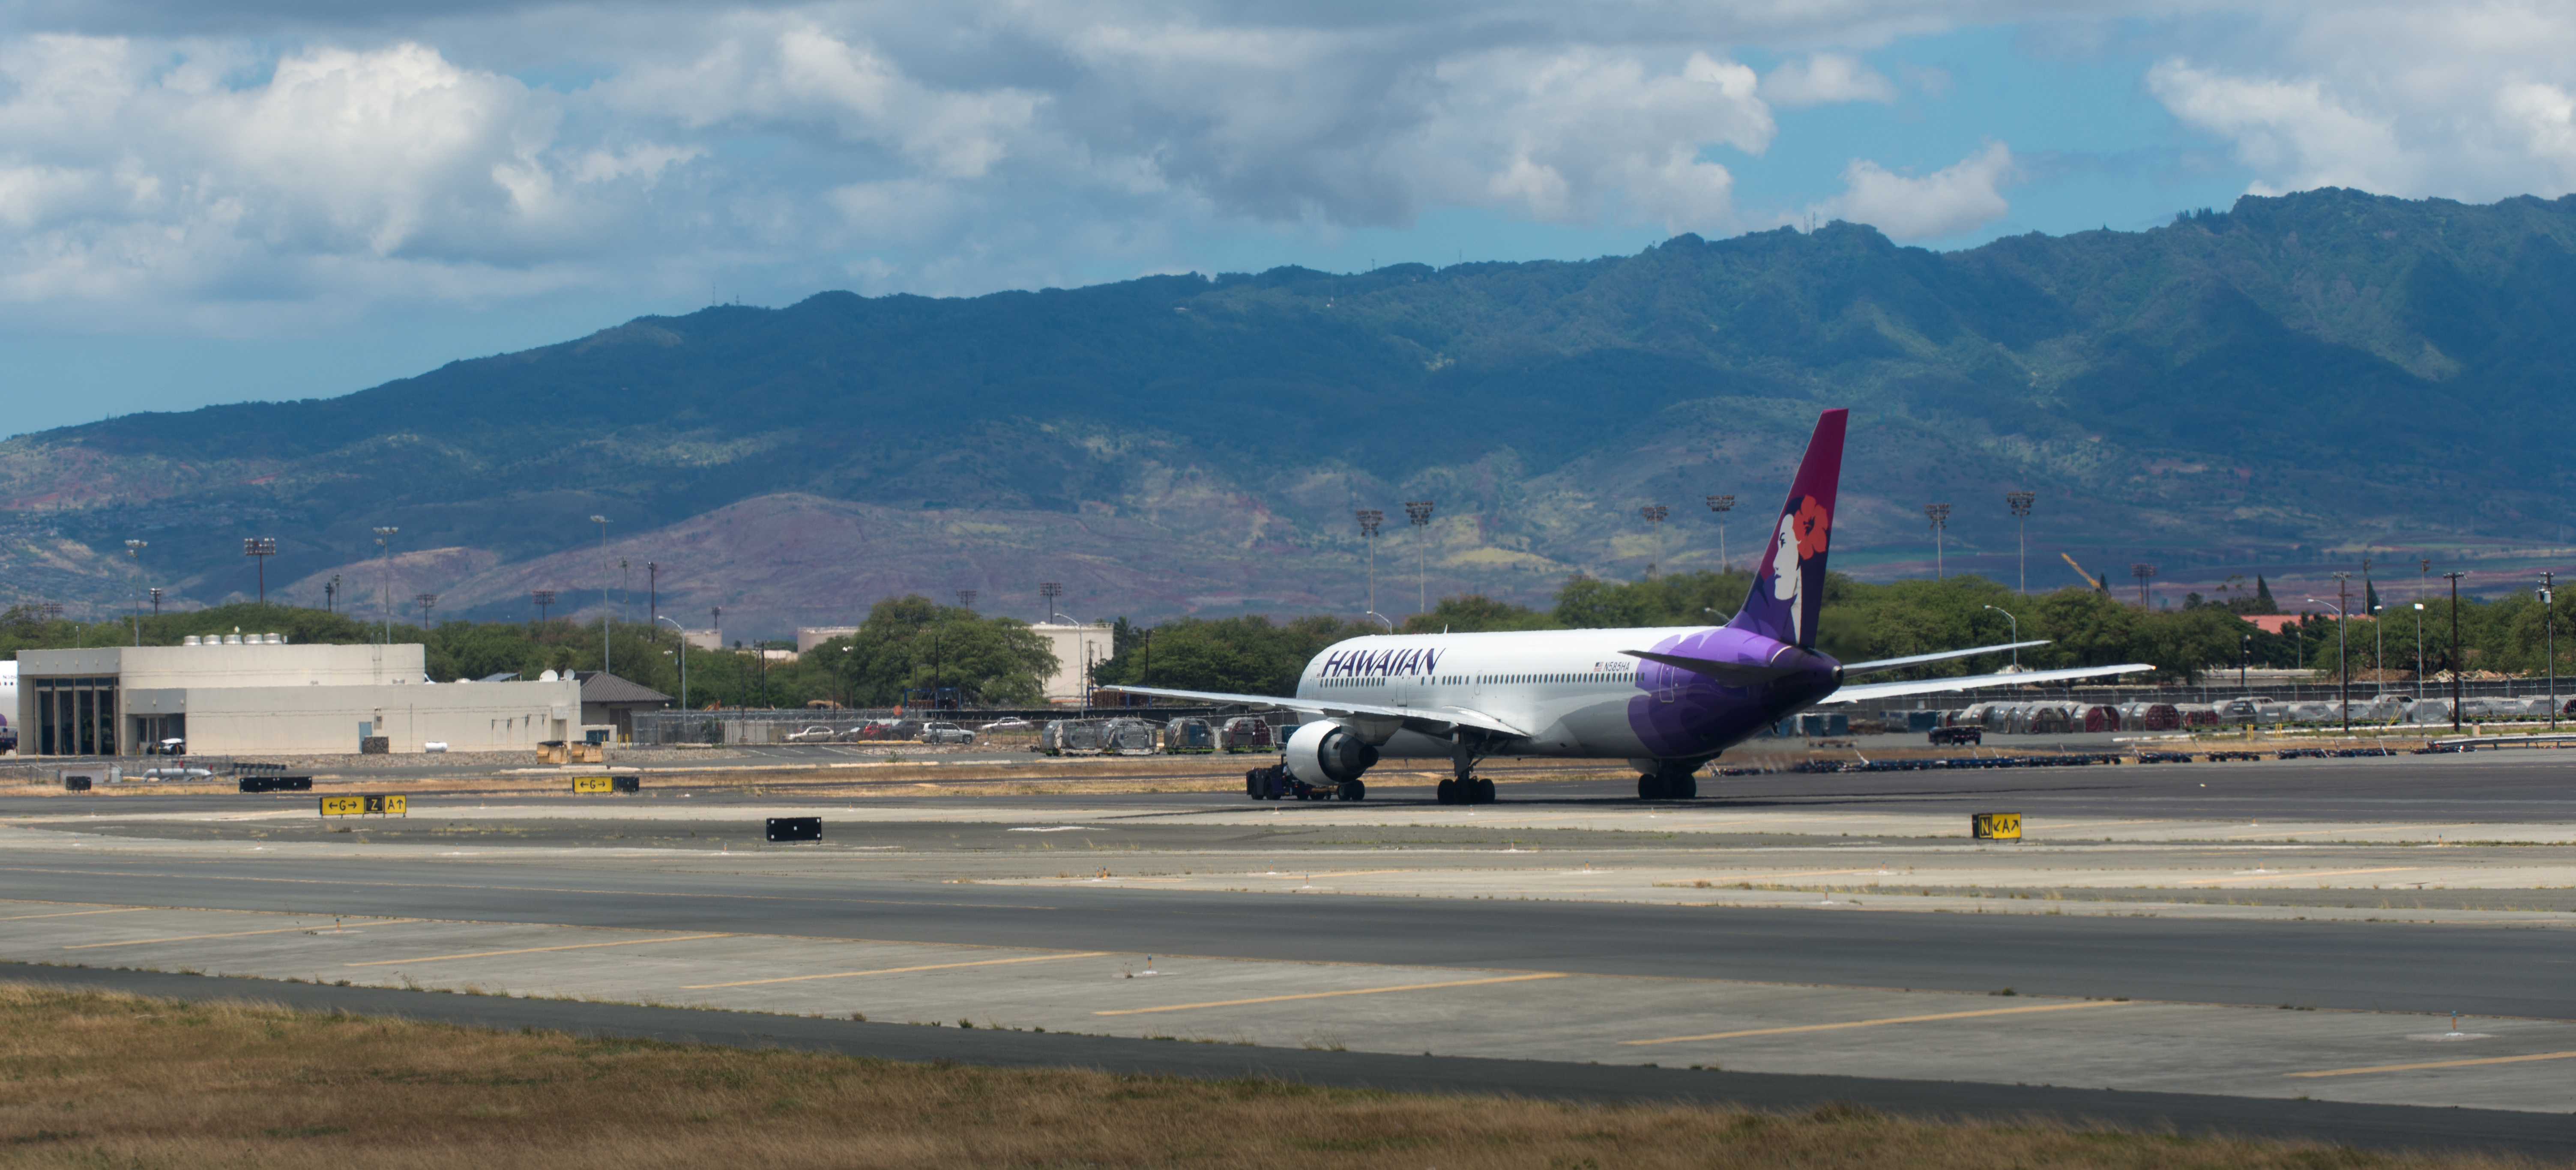 Hawaiian airline plane on tarmac at honolulu international airport in front of hills photo